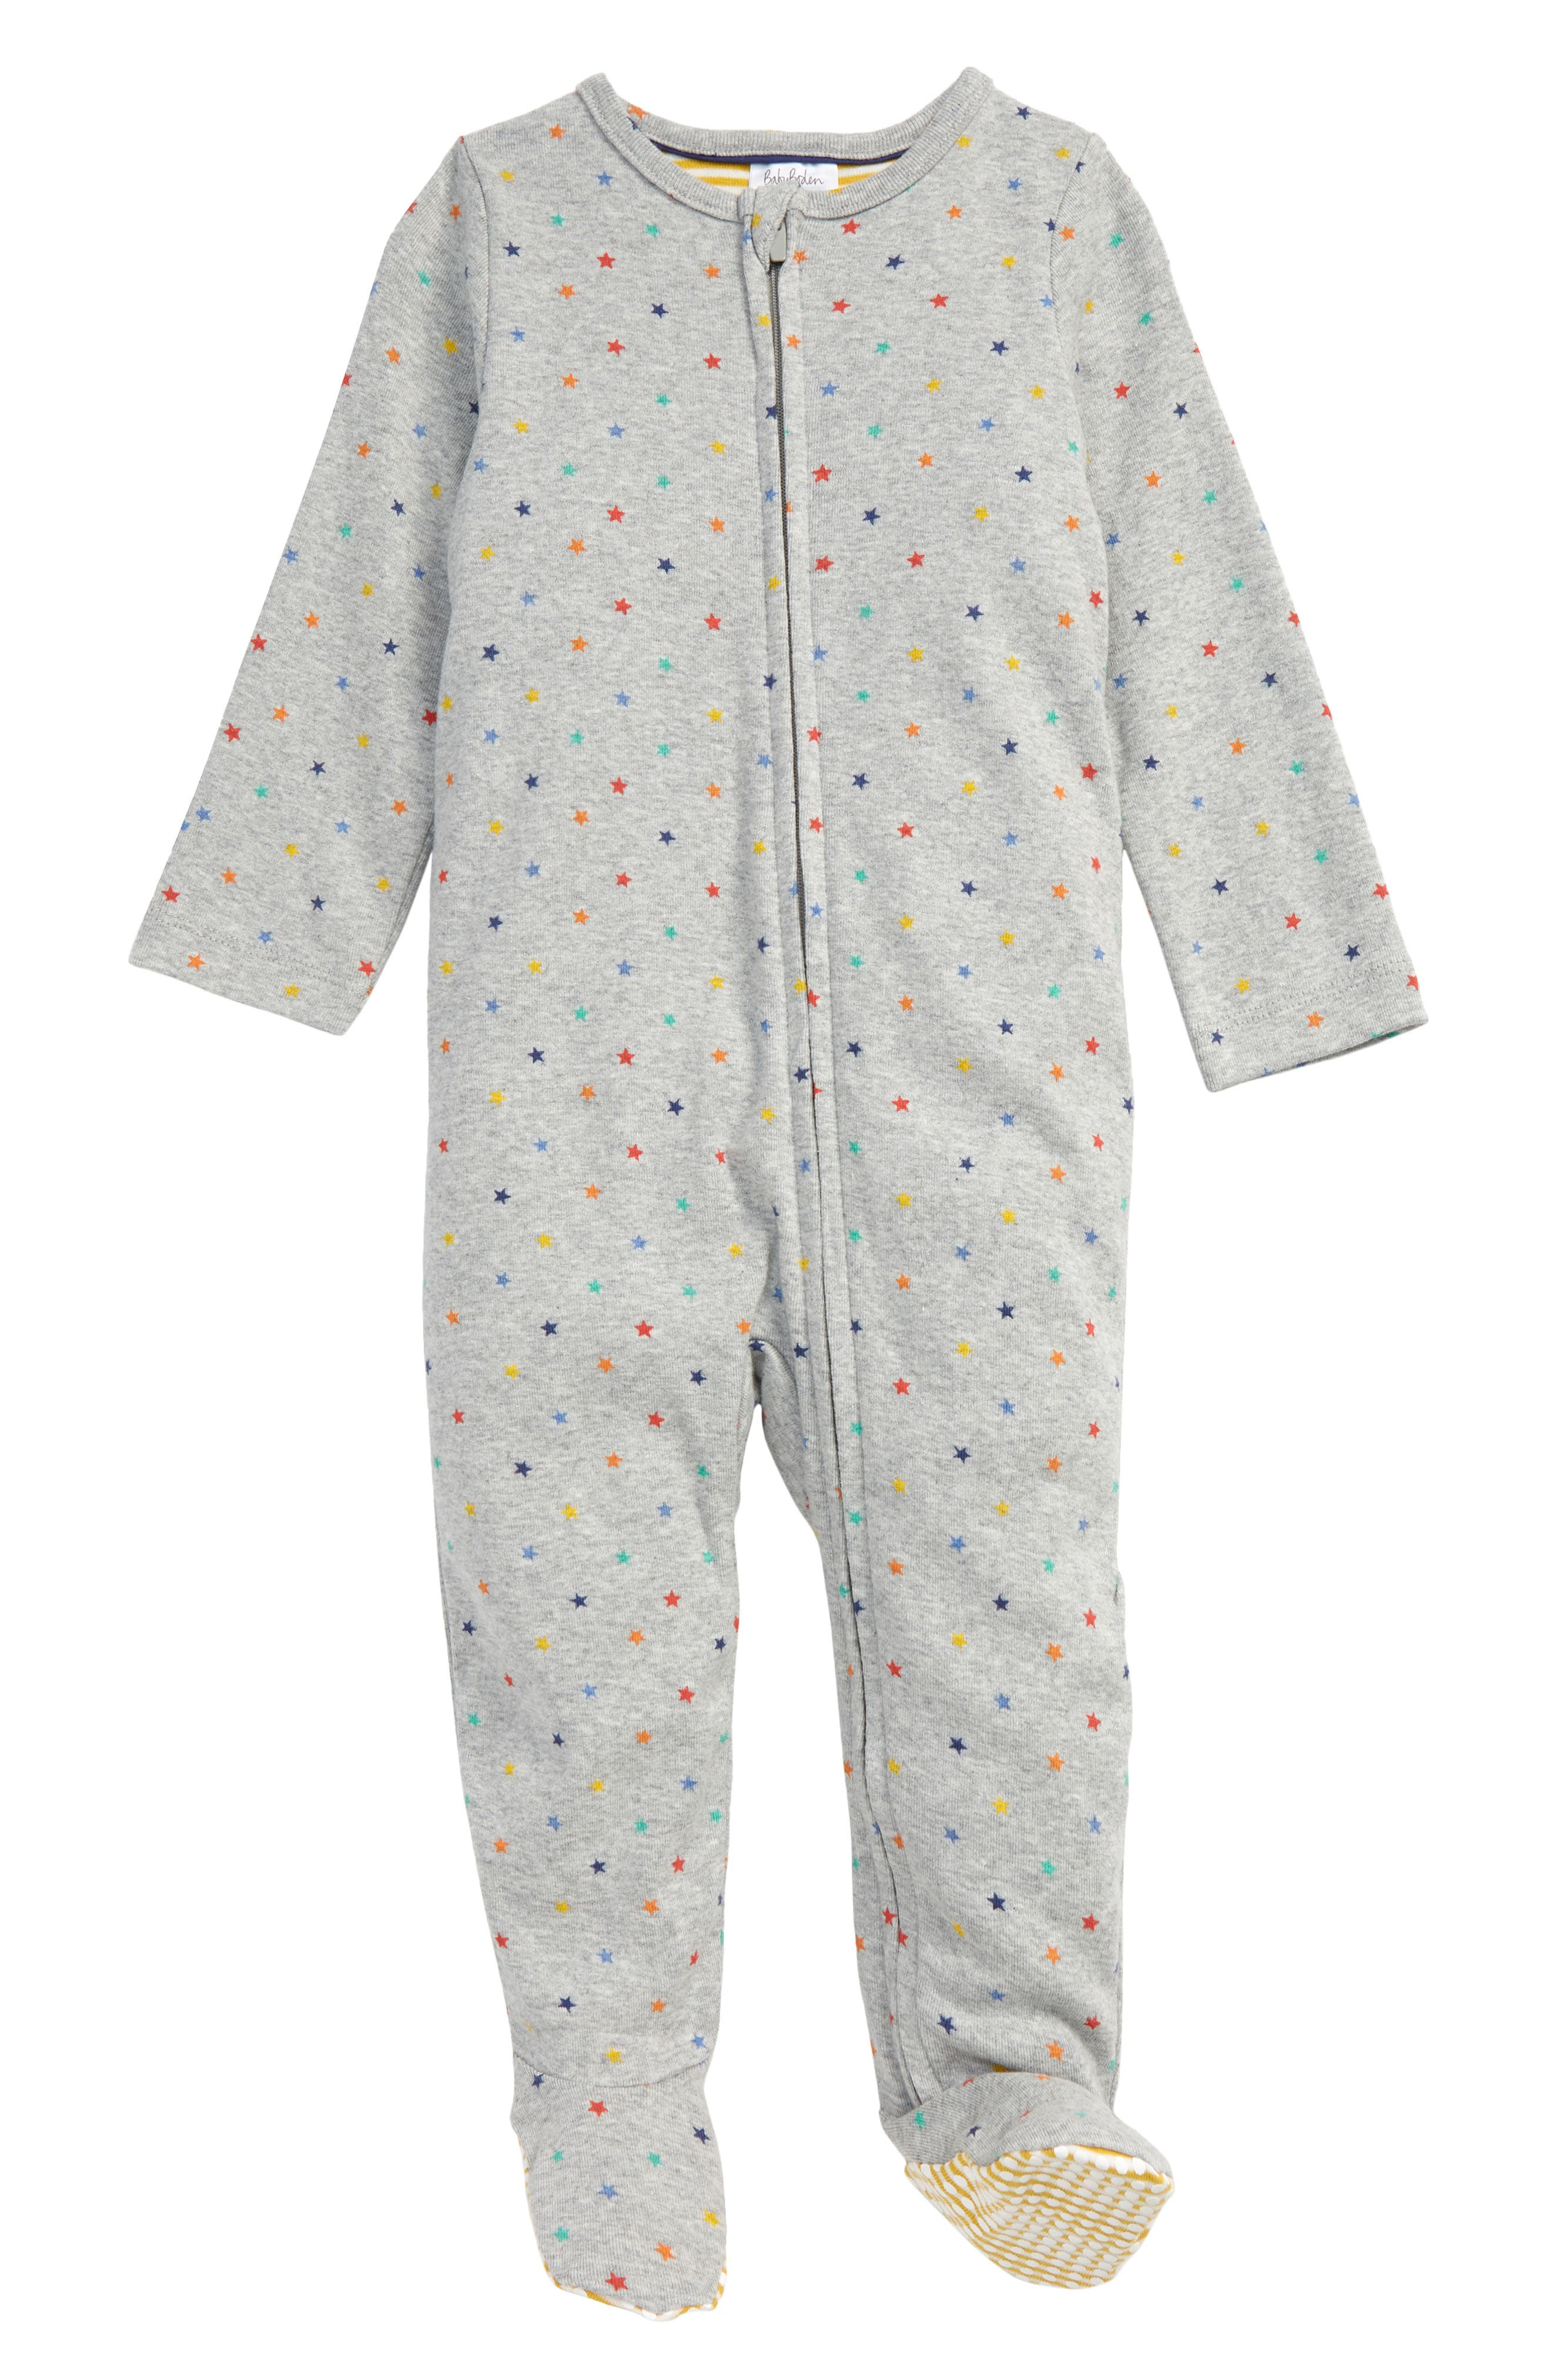 Teeny stars are sprinkled throughout the constellation of this charming zip-up sleepsuit ensuring the wearer dreams of a career in astronomy. Style Name: Mini Boden Zip Sleepsuit (Baby). Style Number: 6097391. Available in stores.